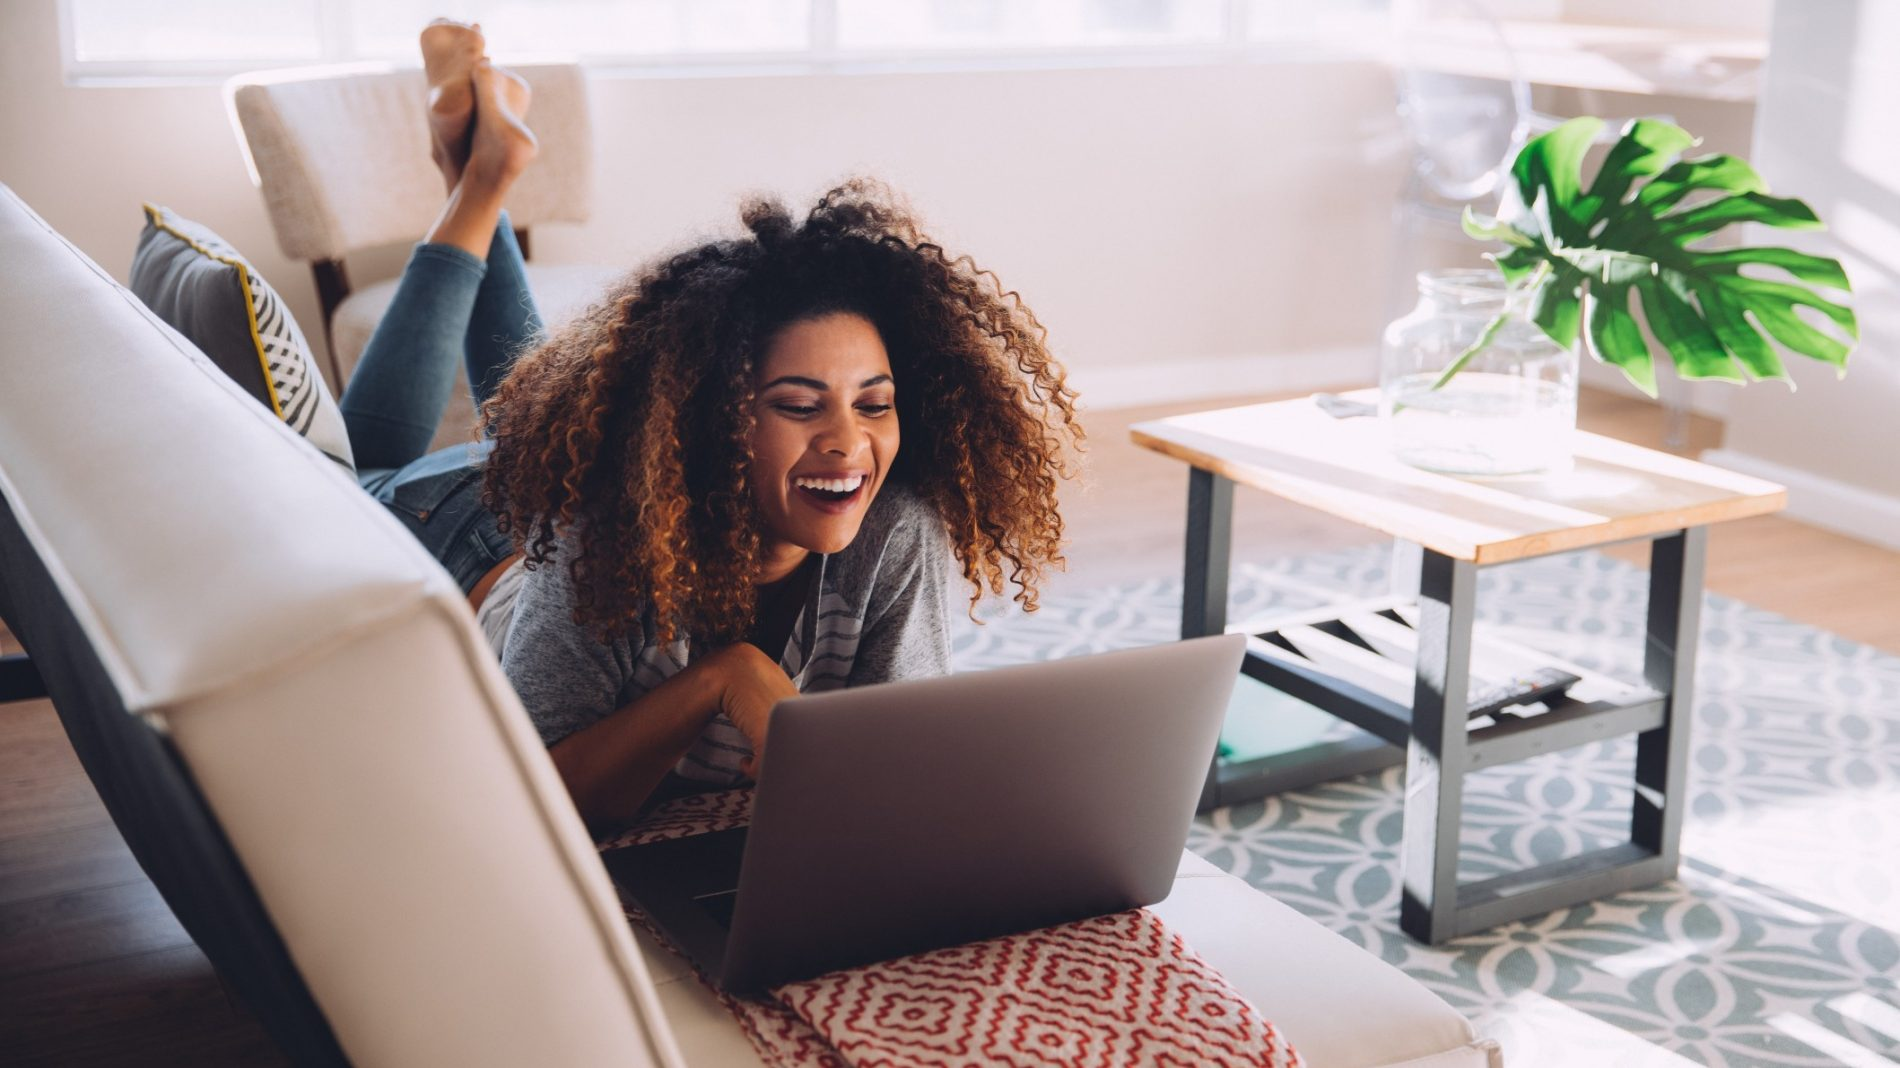 fun-home-woman-laptop-happy-laughing-afro-online-using-technology-video-chat_t20_Ggp9bw